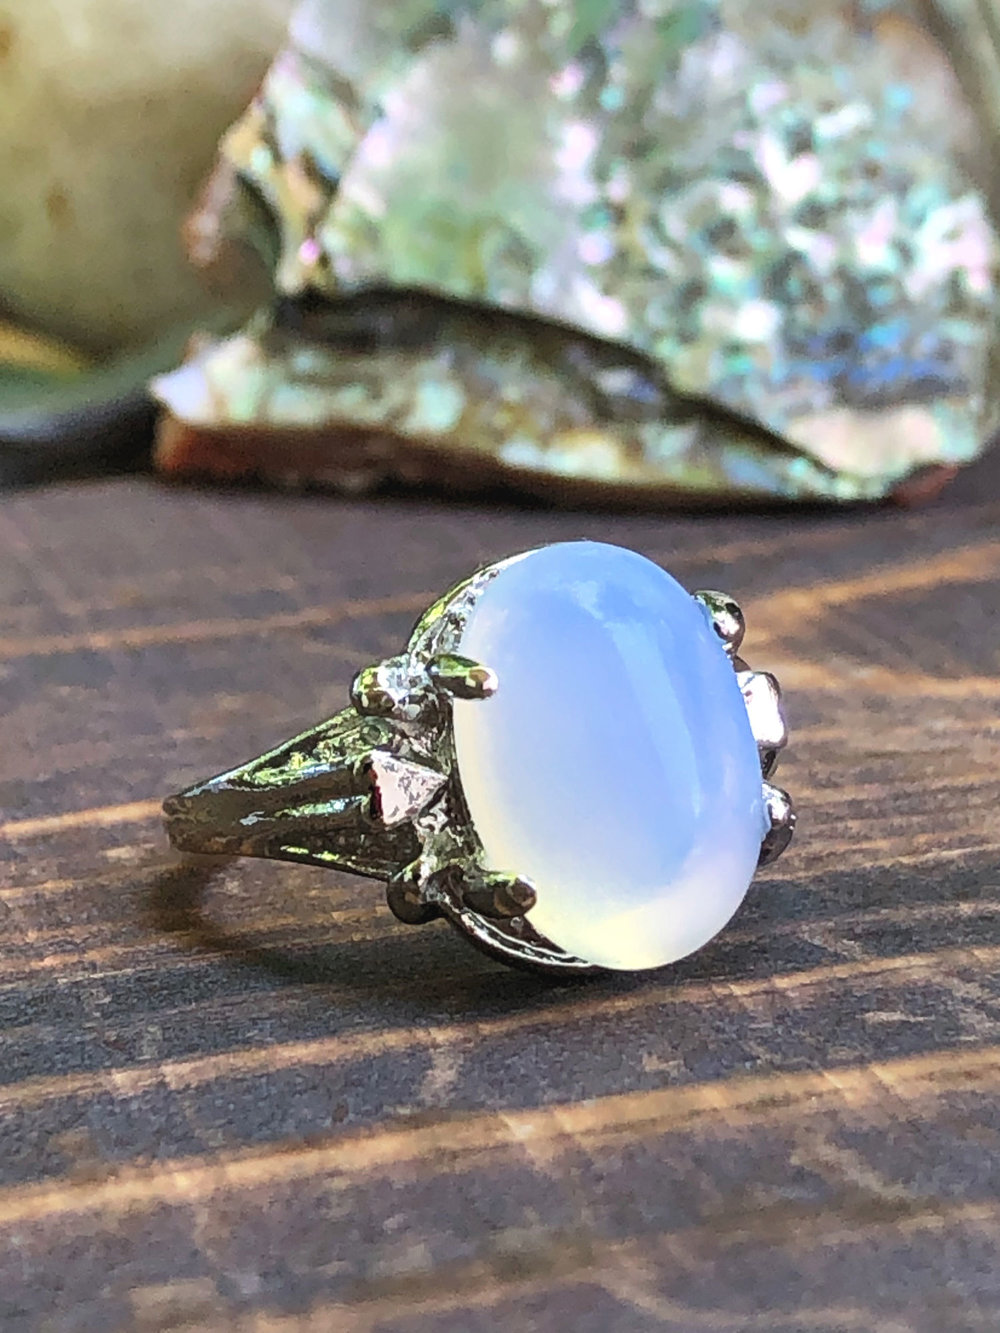 opalite meaning